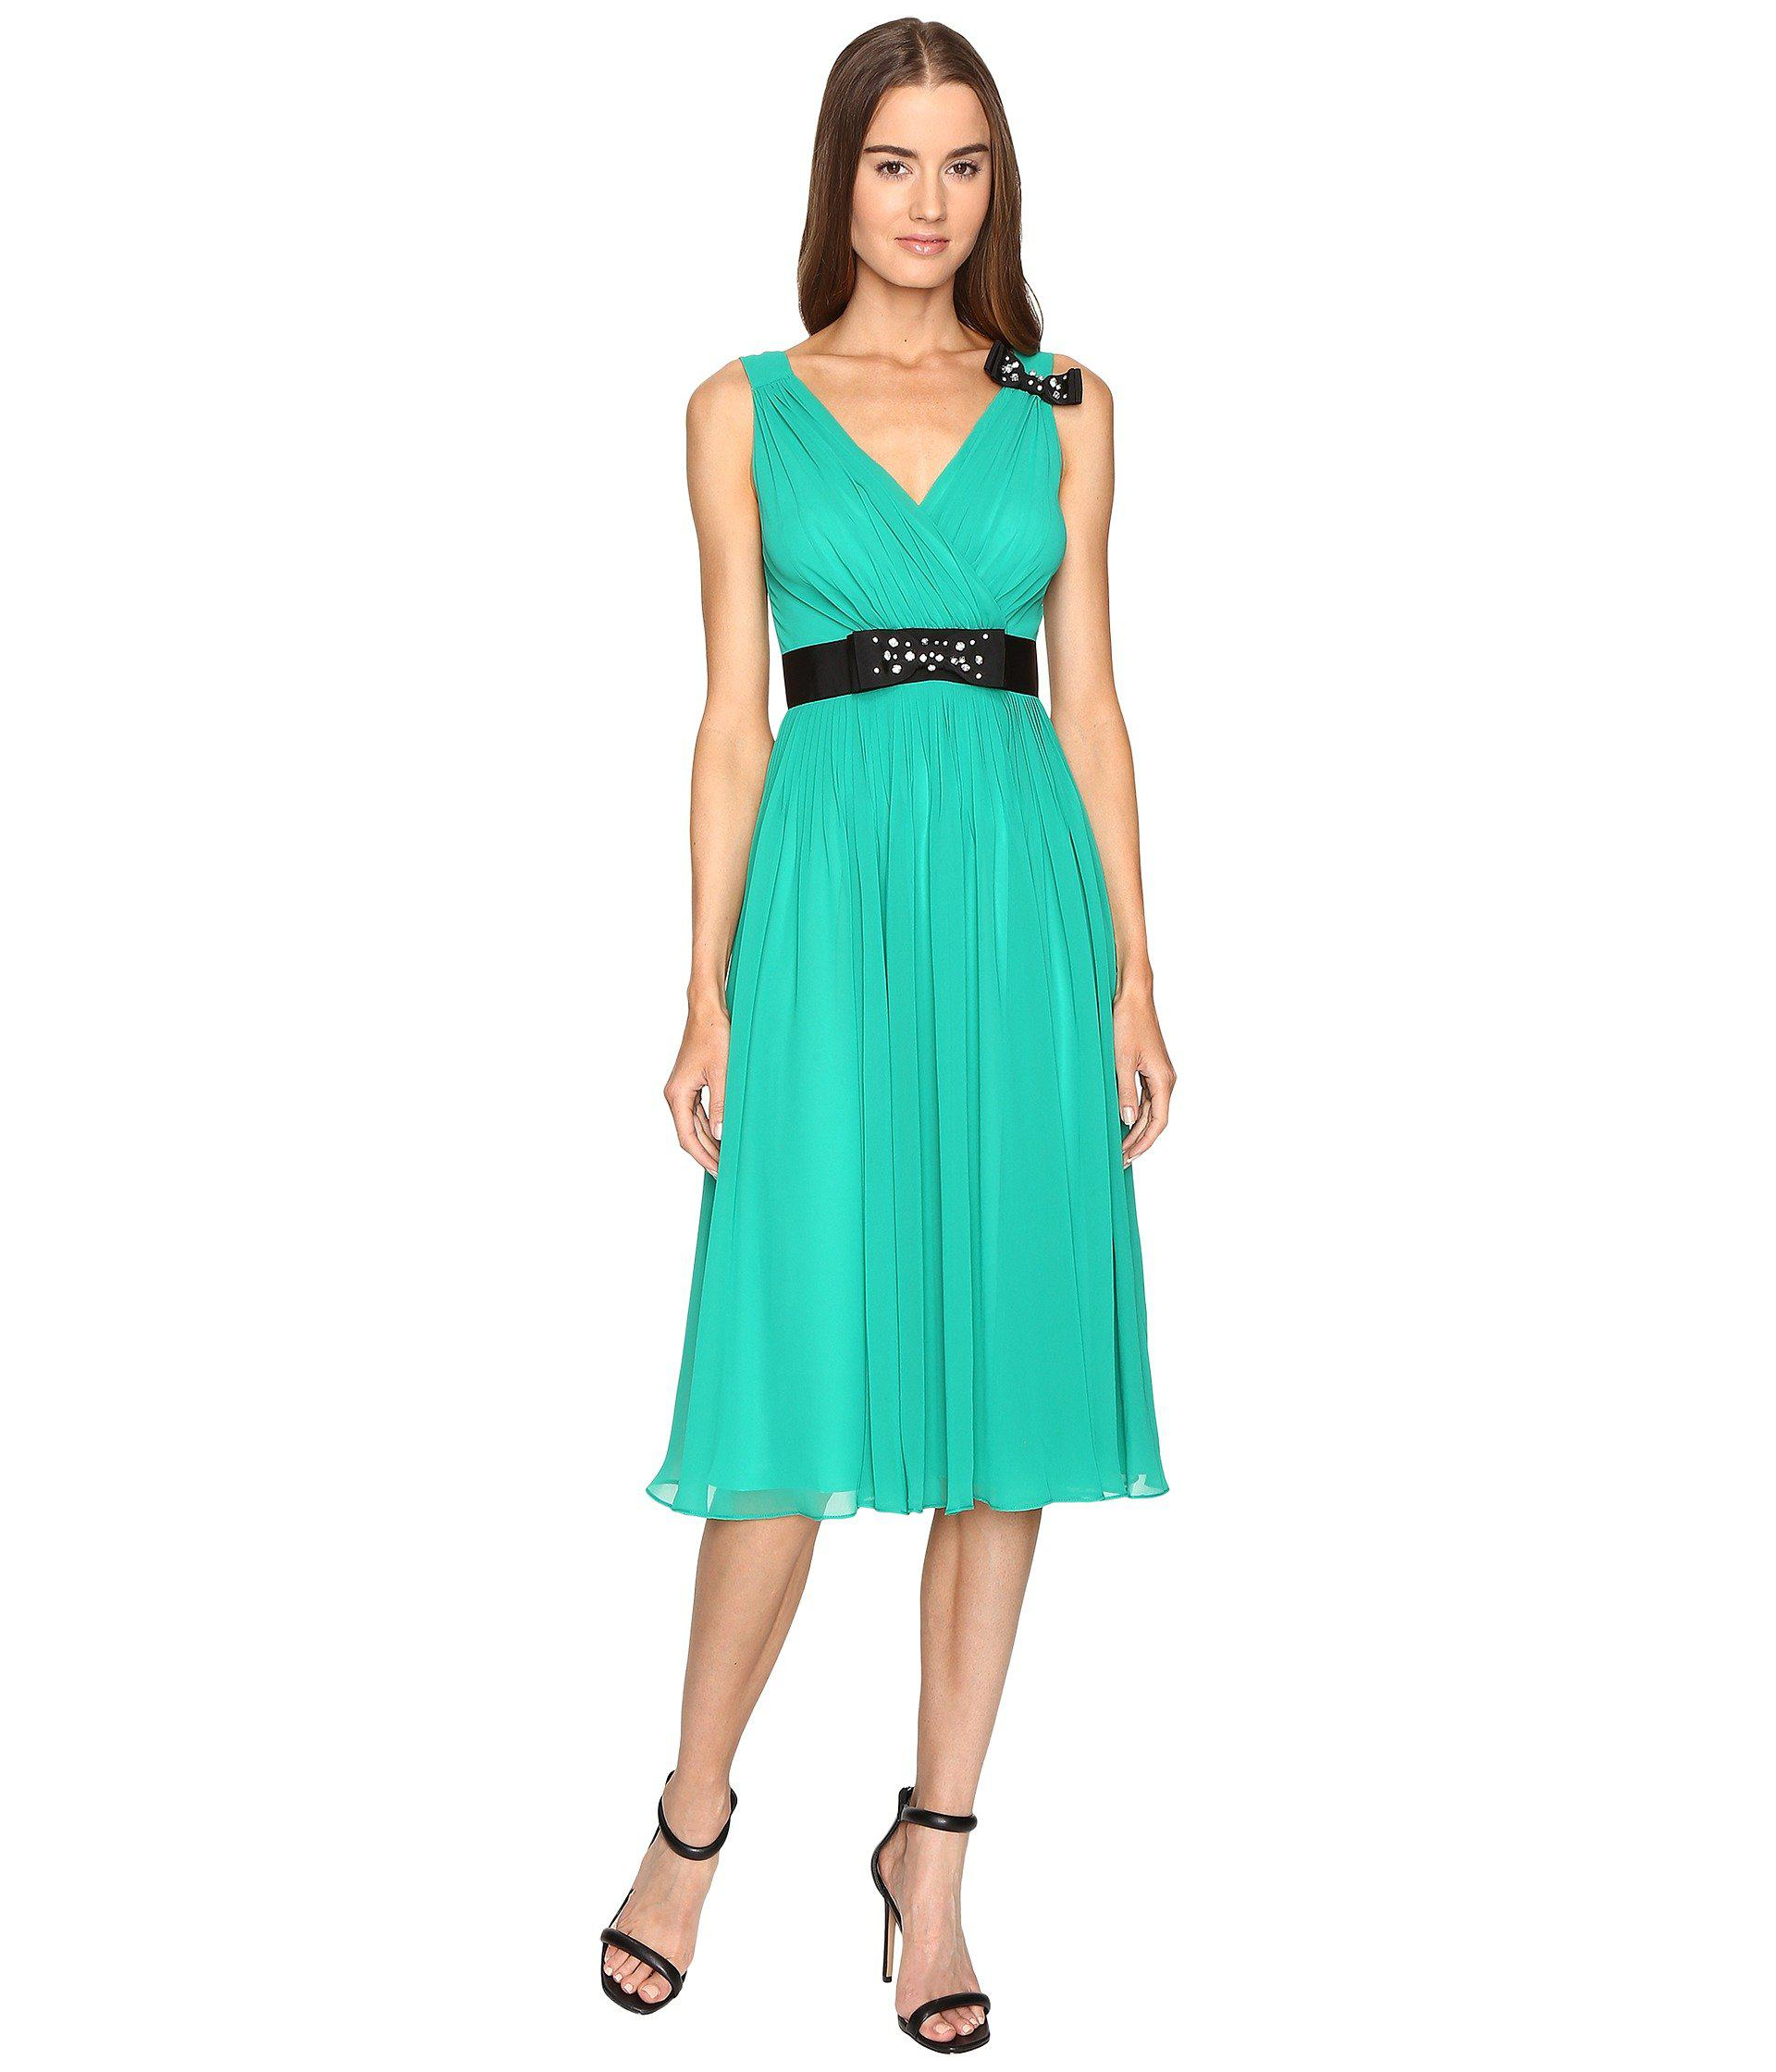 8e98b4a354 Lyst - Kate Spade Embellished Bow Dress in Green